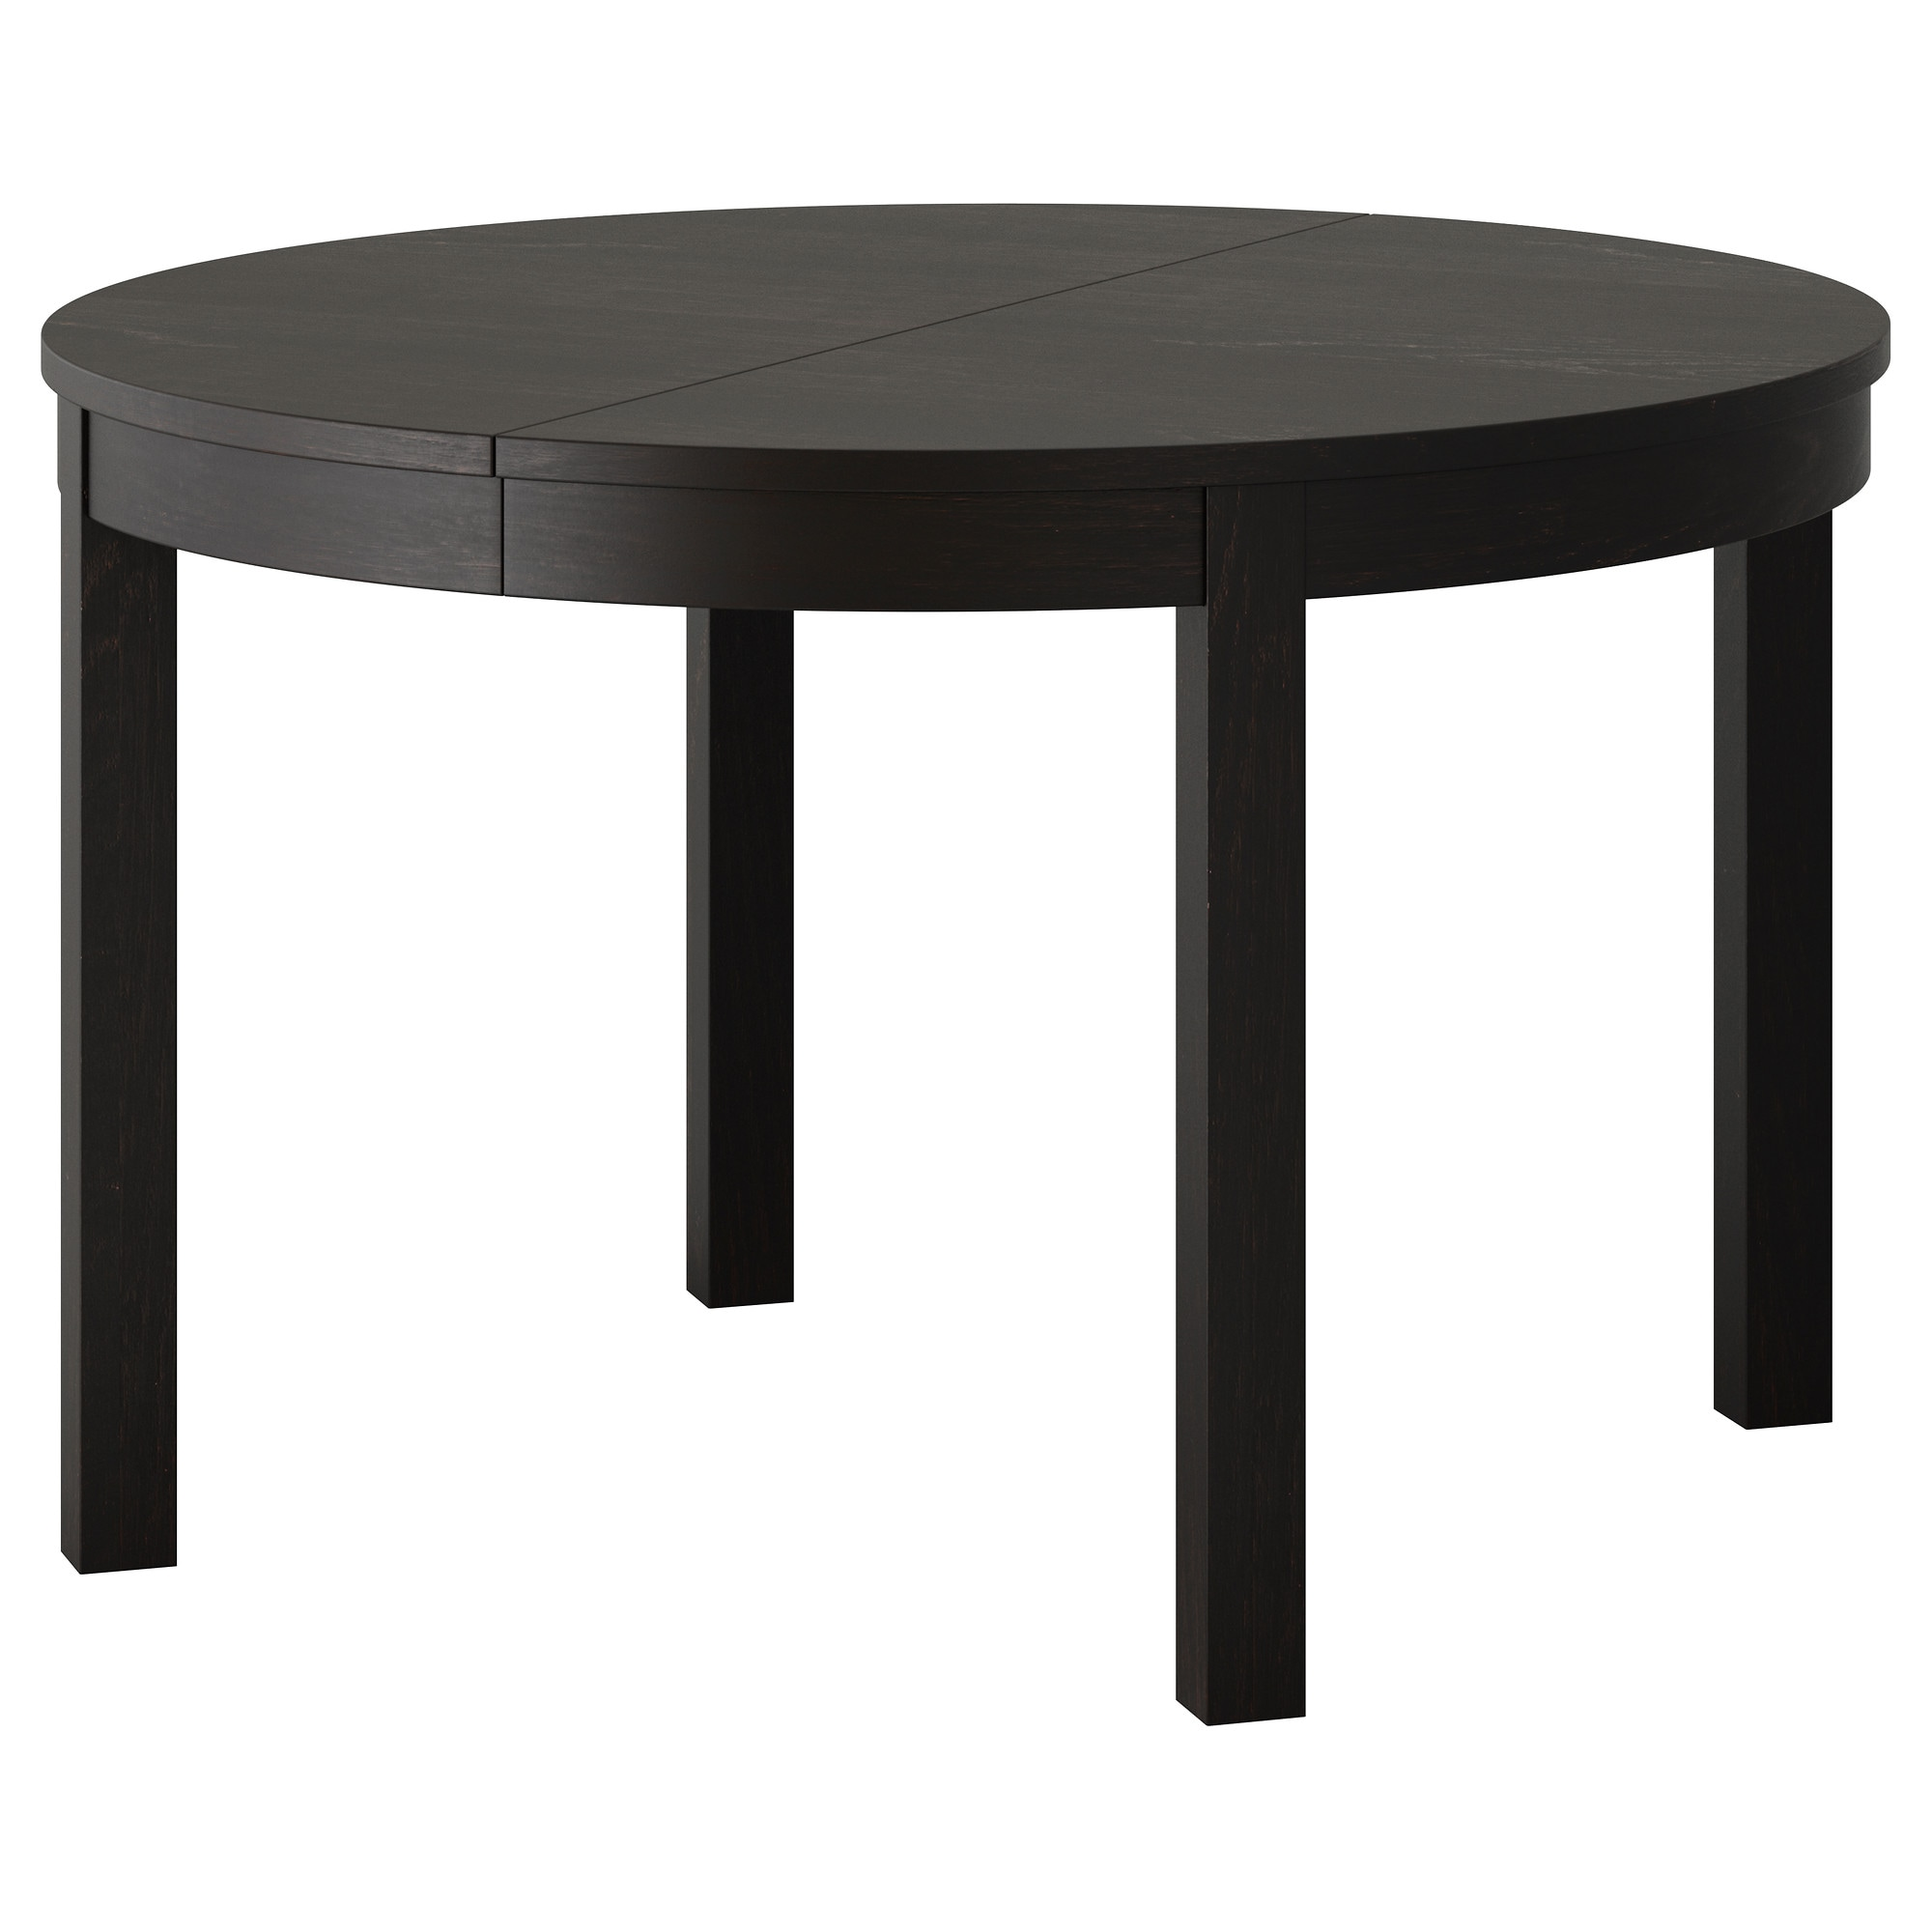 black furniture ikea. black furniture ikea a